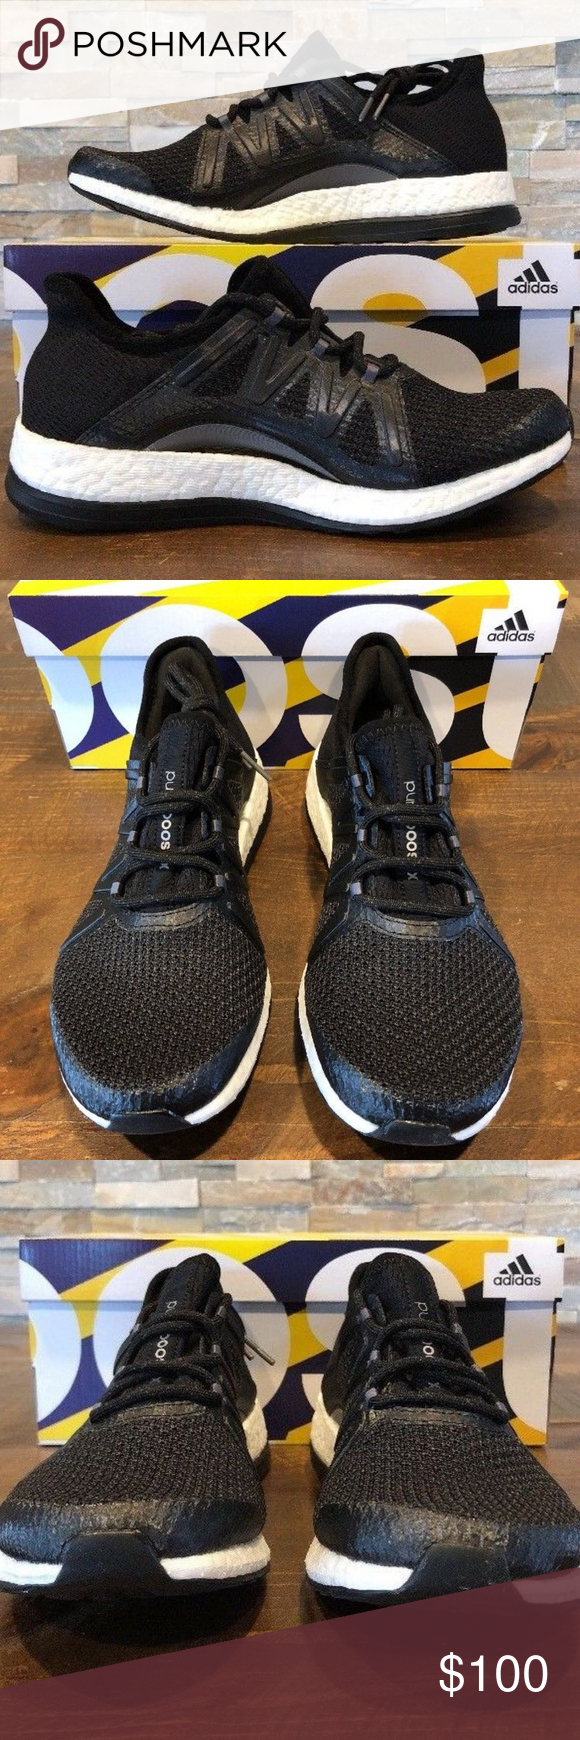 e784d1309 NEW ADIDAS Performance Womens Pureboost Xpose Blac NEW ADIDAS Performance Womens  Pureboost Xpose Black Running Shoe BB6097 New With Box Shipped Double Boxed  ...